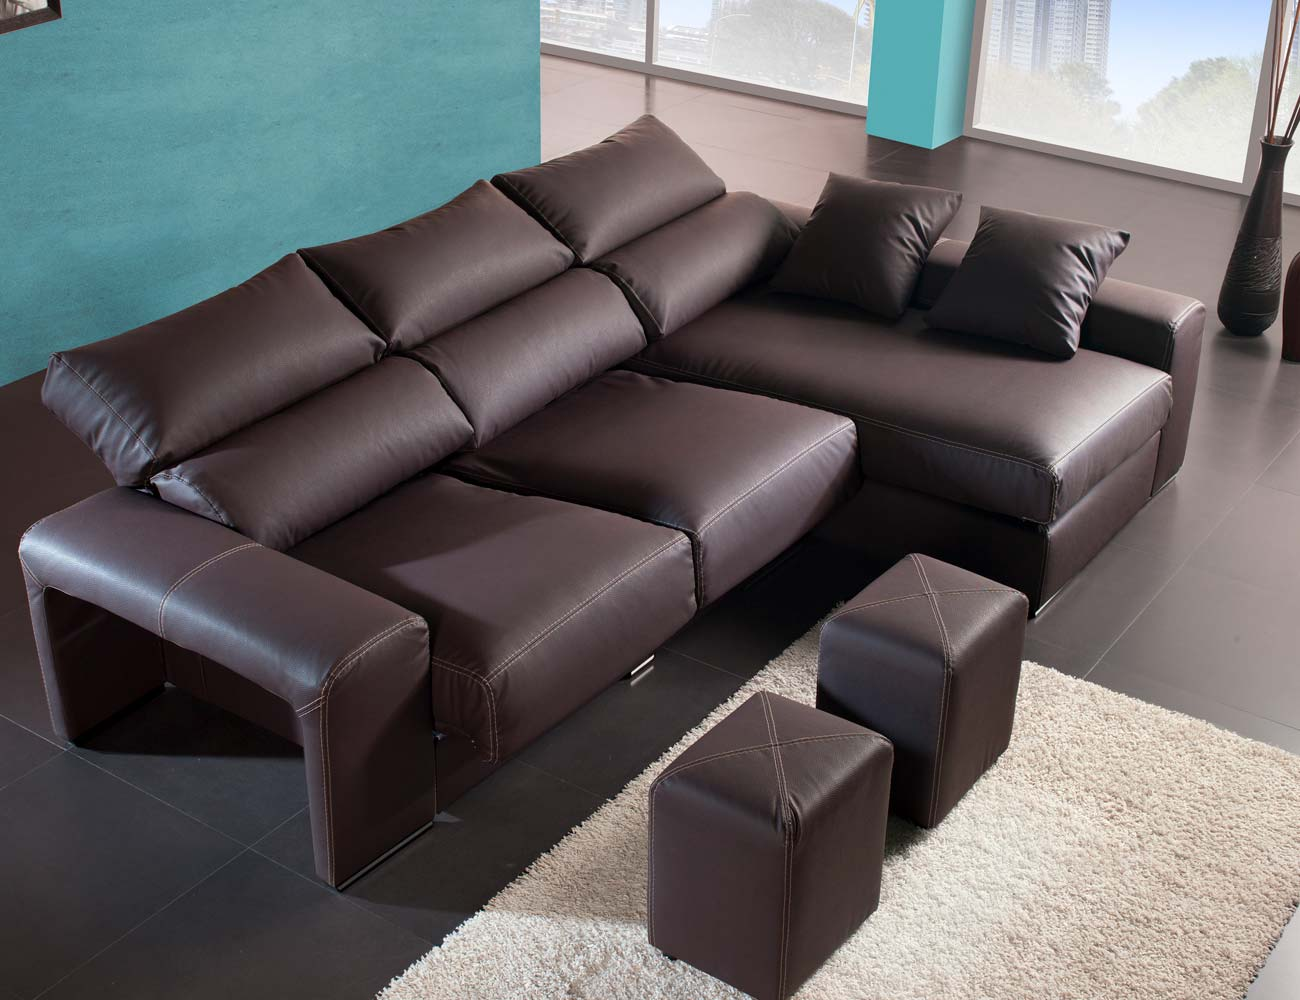 Sofa chaiselongue moderno polipiel chocolate poufs taburetes59